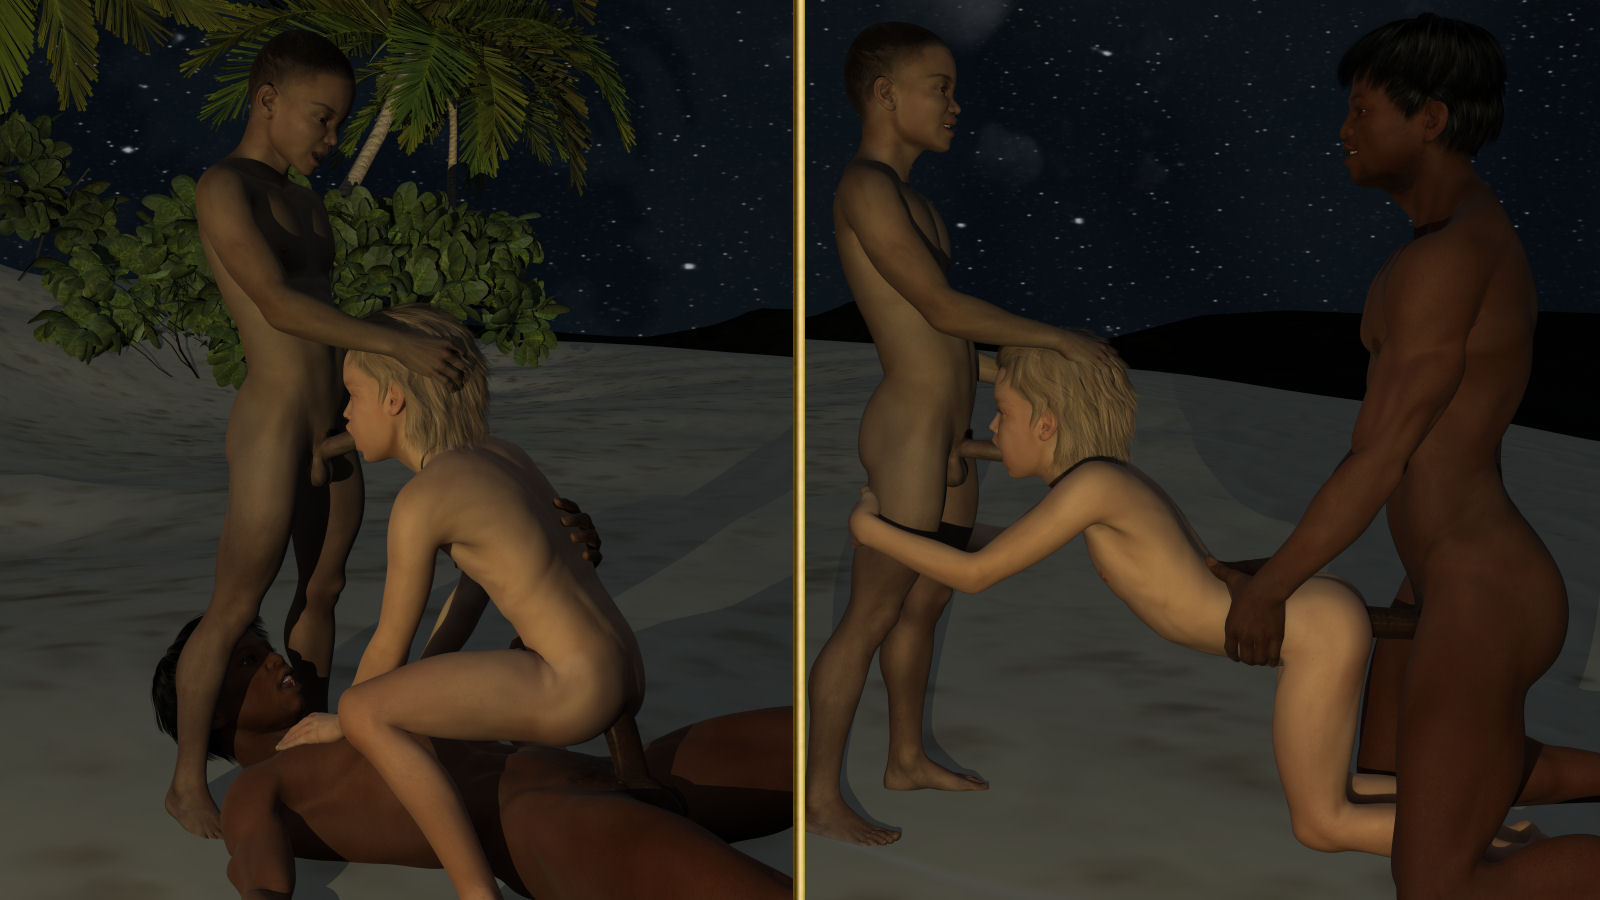 shemale joins in with a couple and they have a titillating three